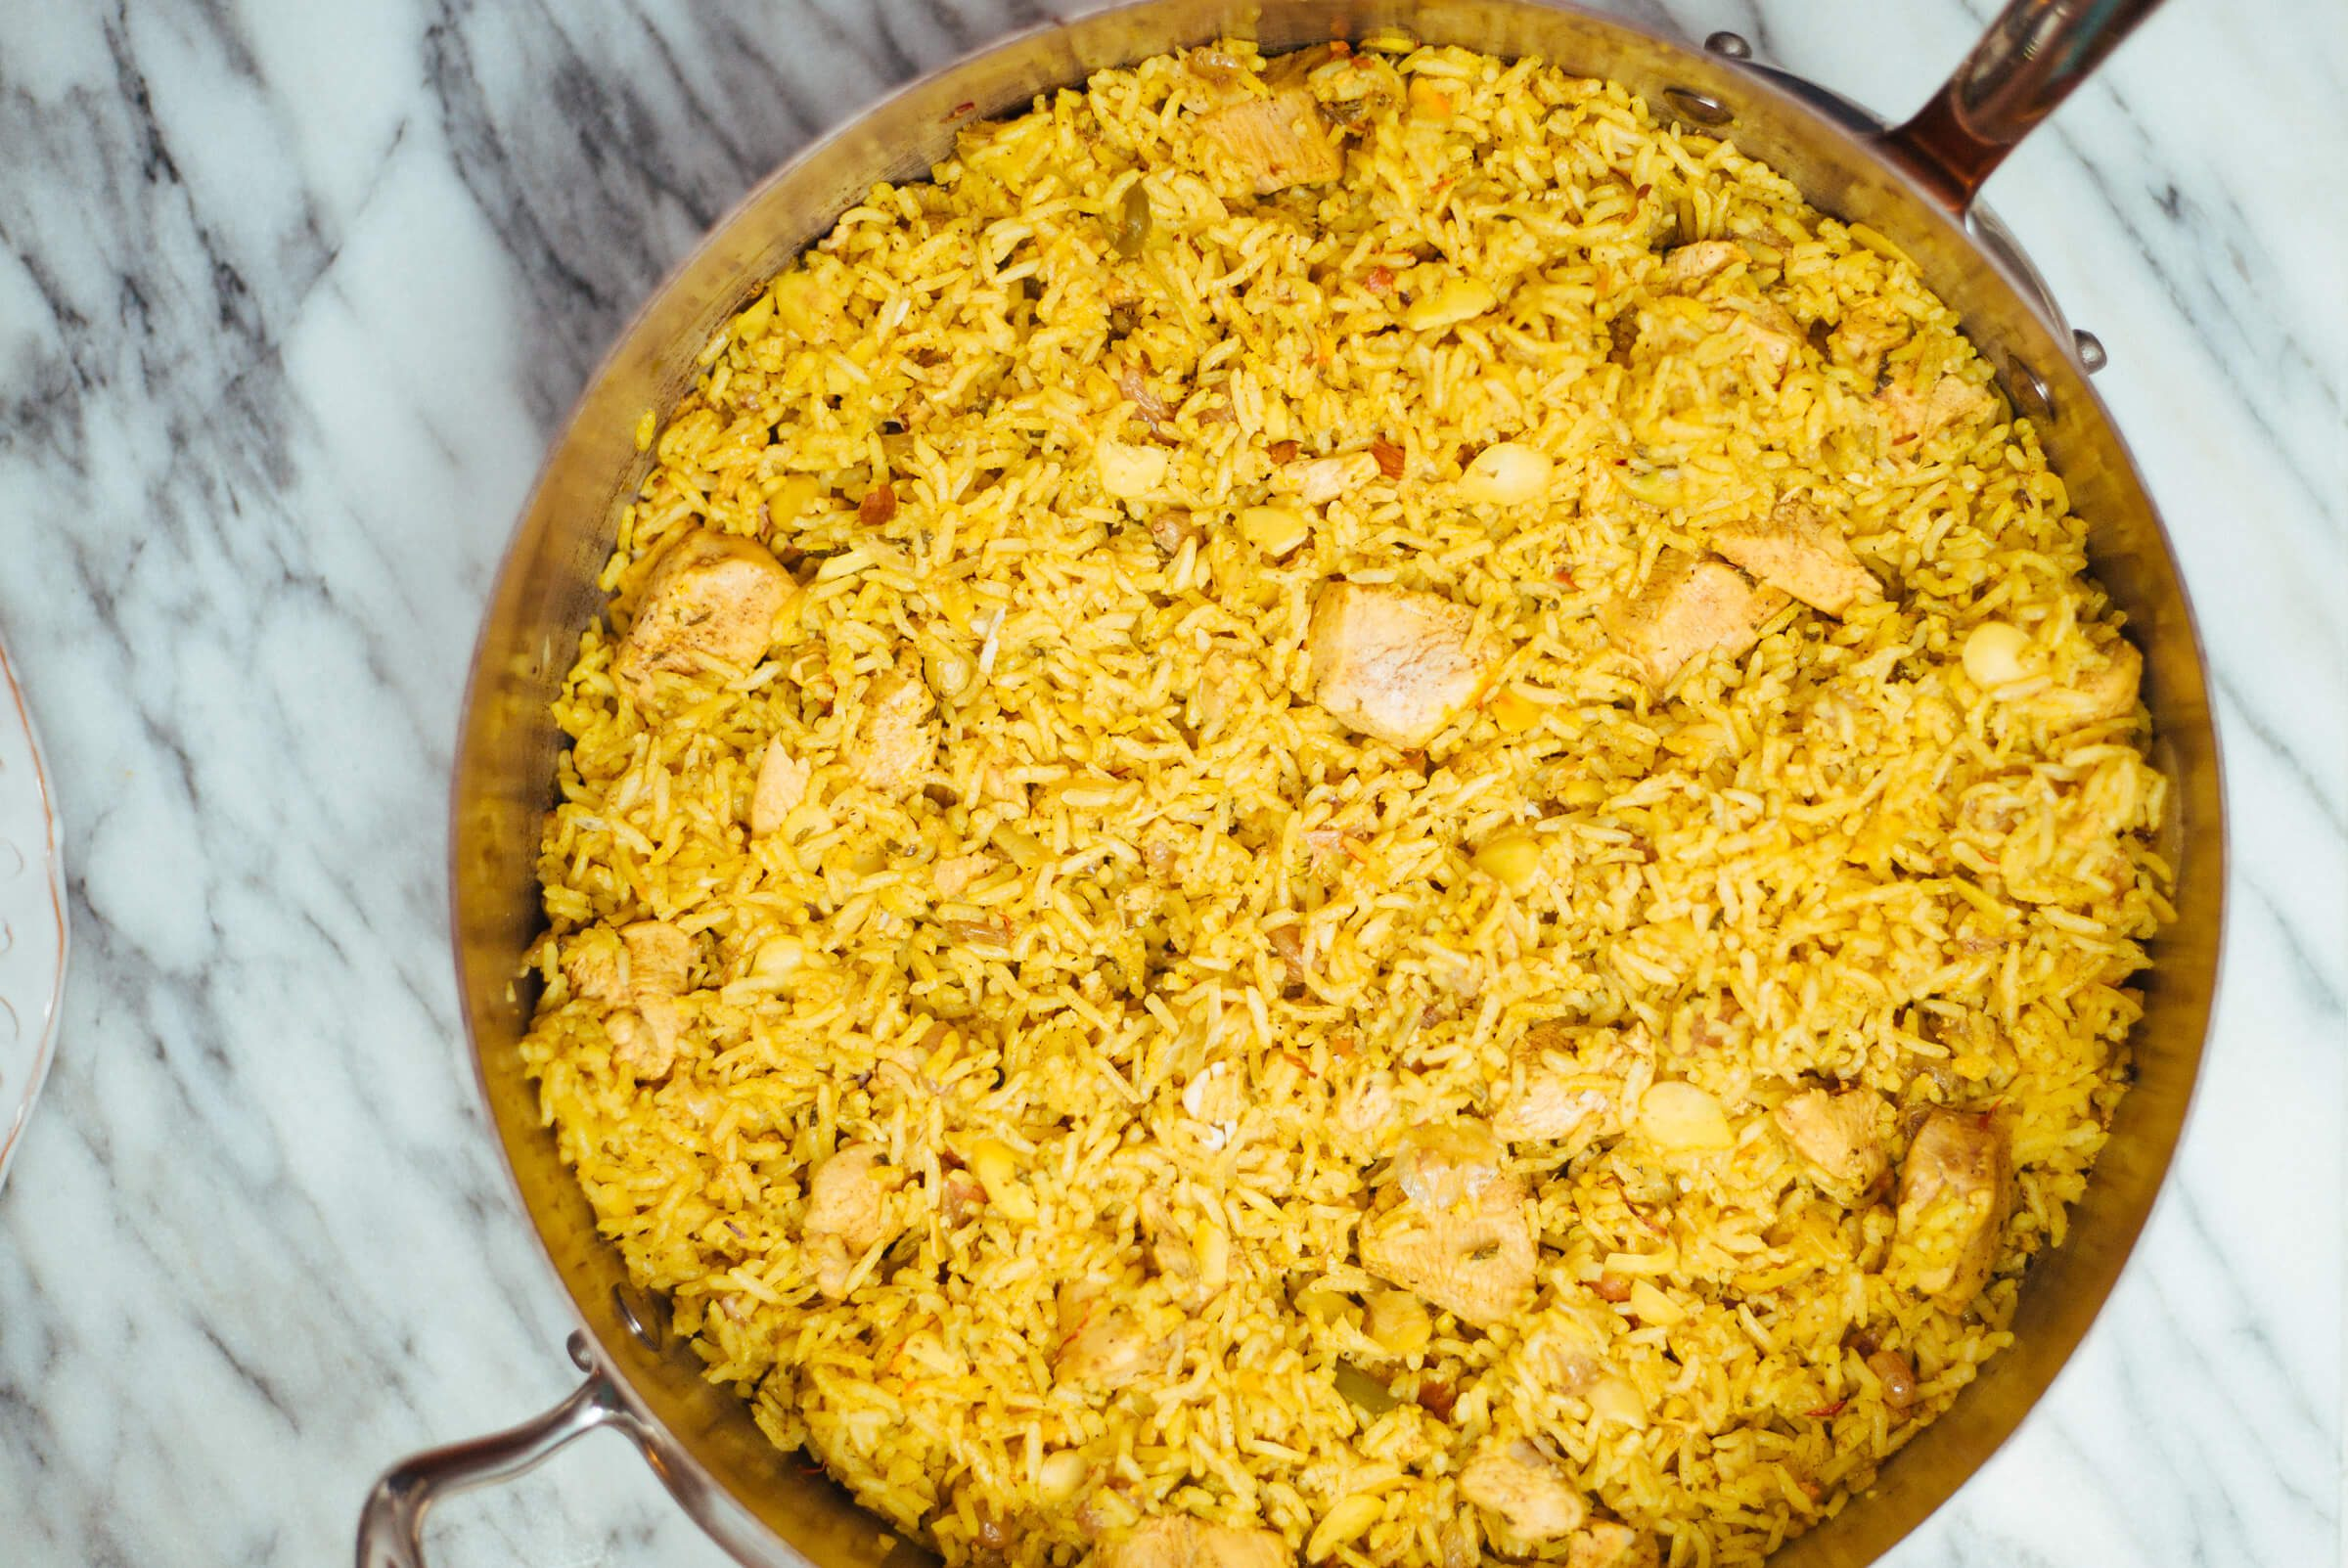 Indian food like Chicken Biryani recipe made in a Mauviel pan